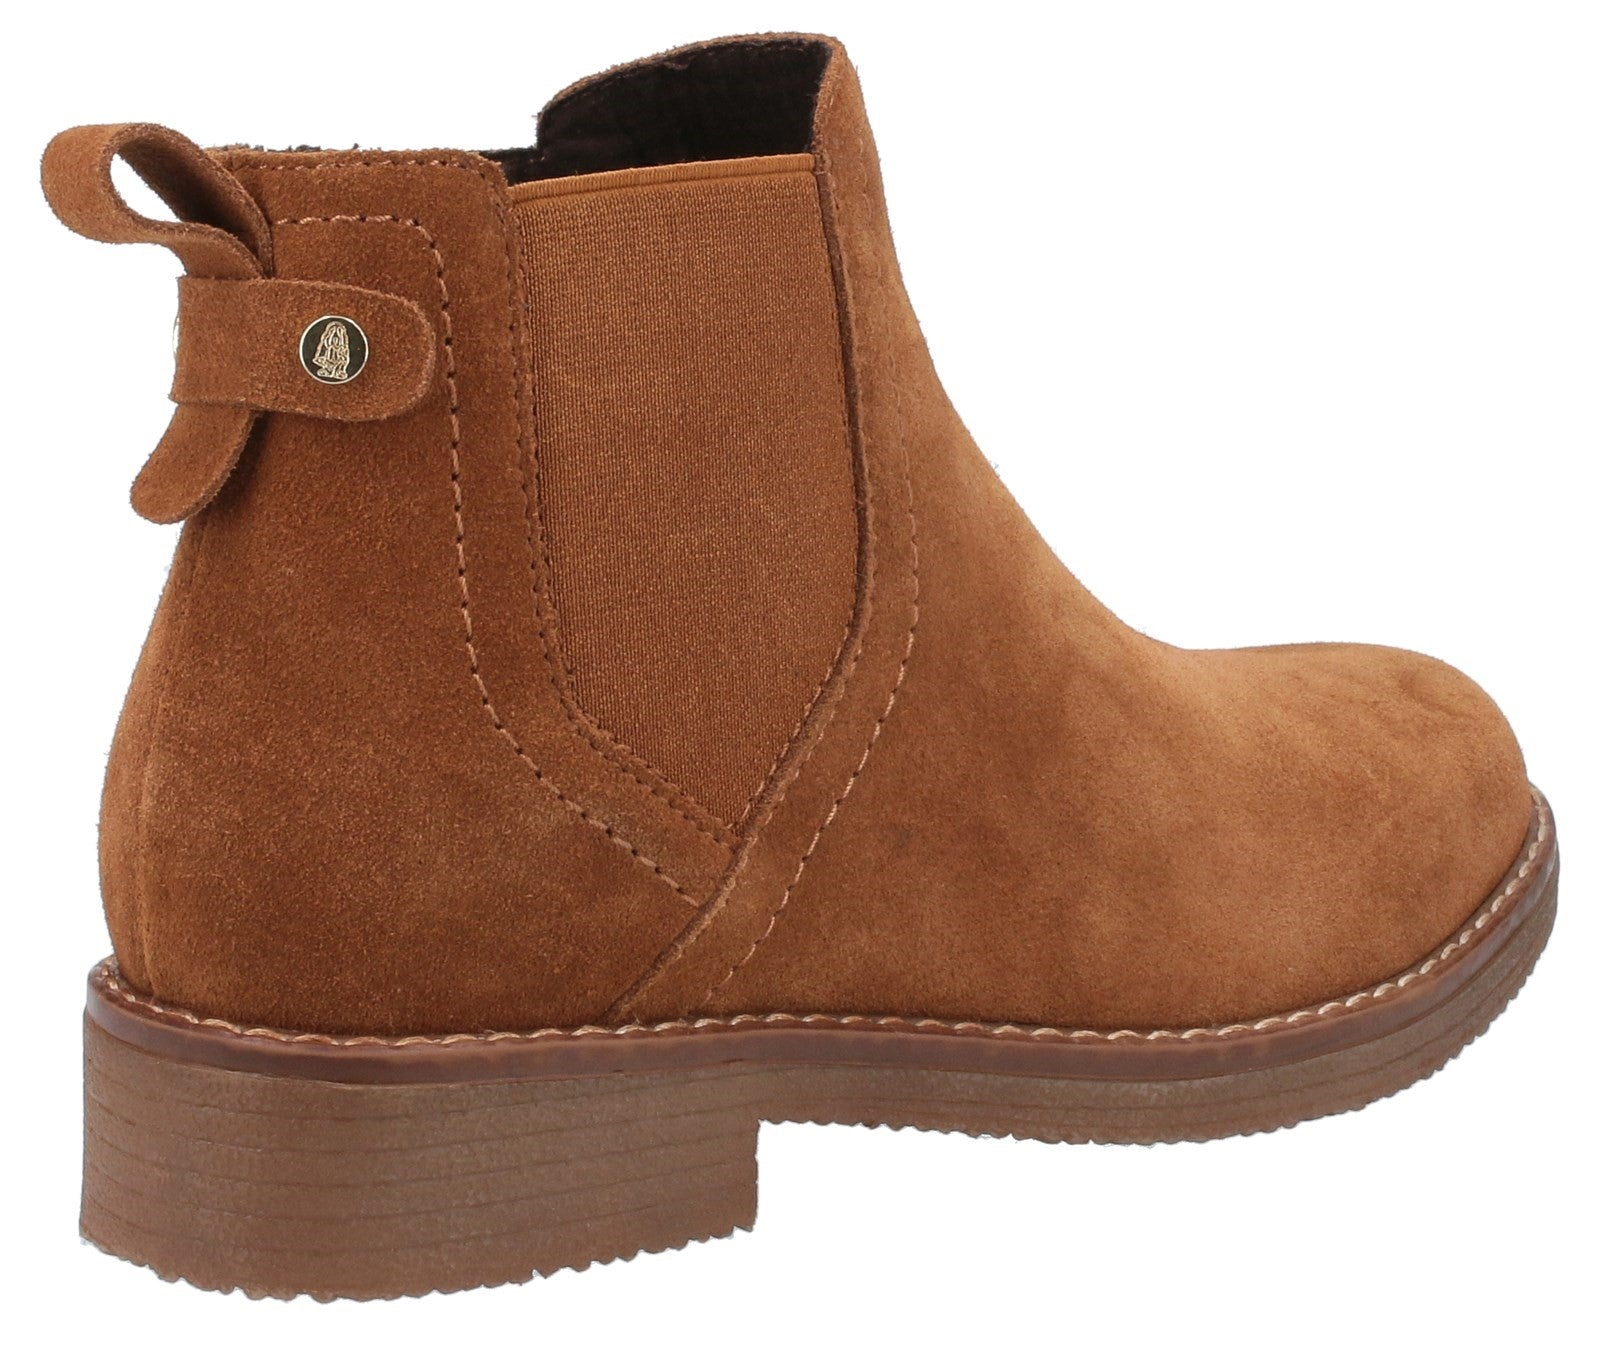 Tan Maddy Ankle Boots